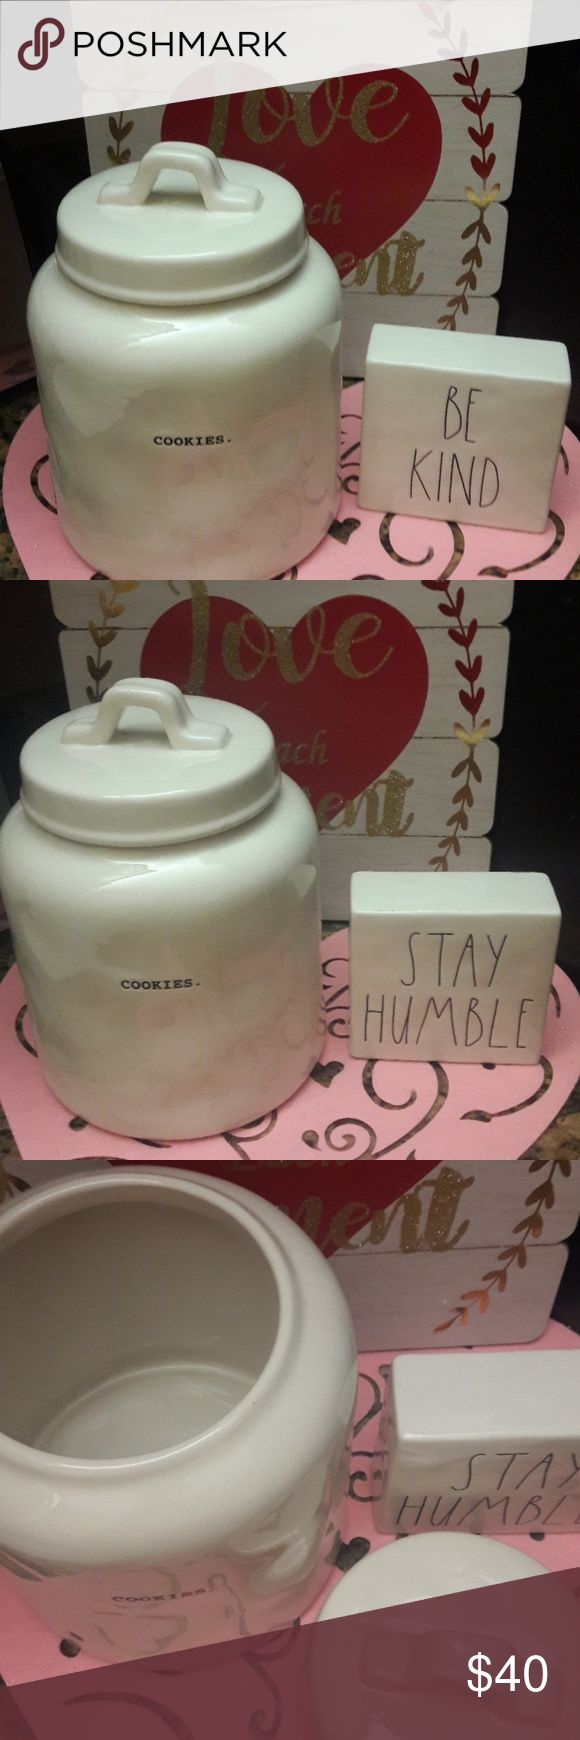 Rae Dunn cookie jar Rae Dunn cookie jar & Other Stories Other